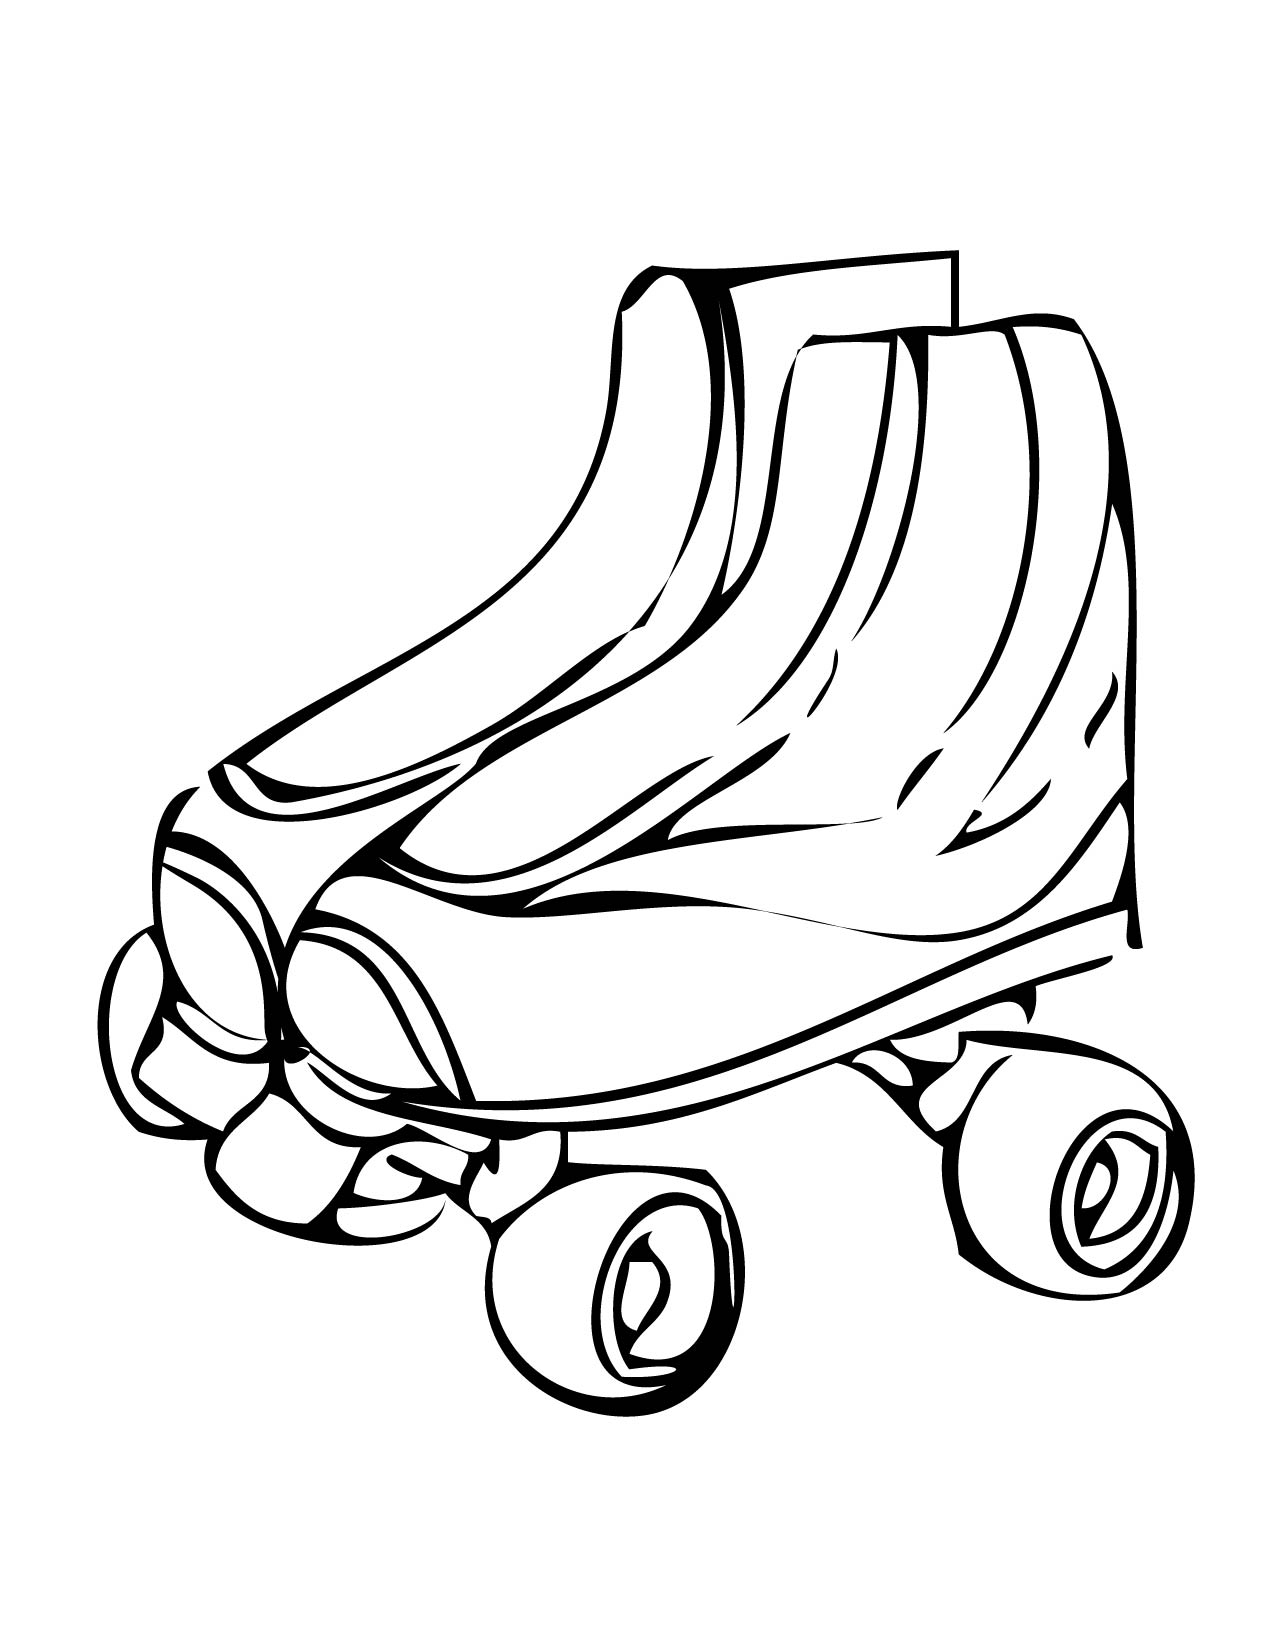 Roller skates clipart black and white graphic black and white Free Rollerskate Cliparts, Download Free Clip Art, Free Clip ... graphic black and white